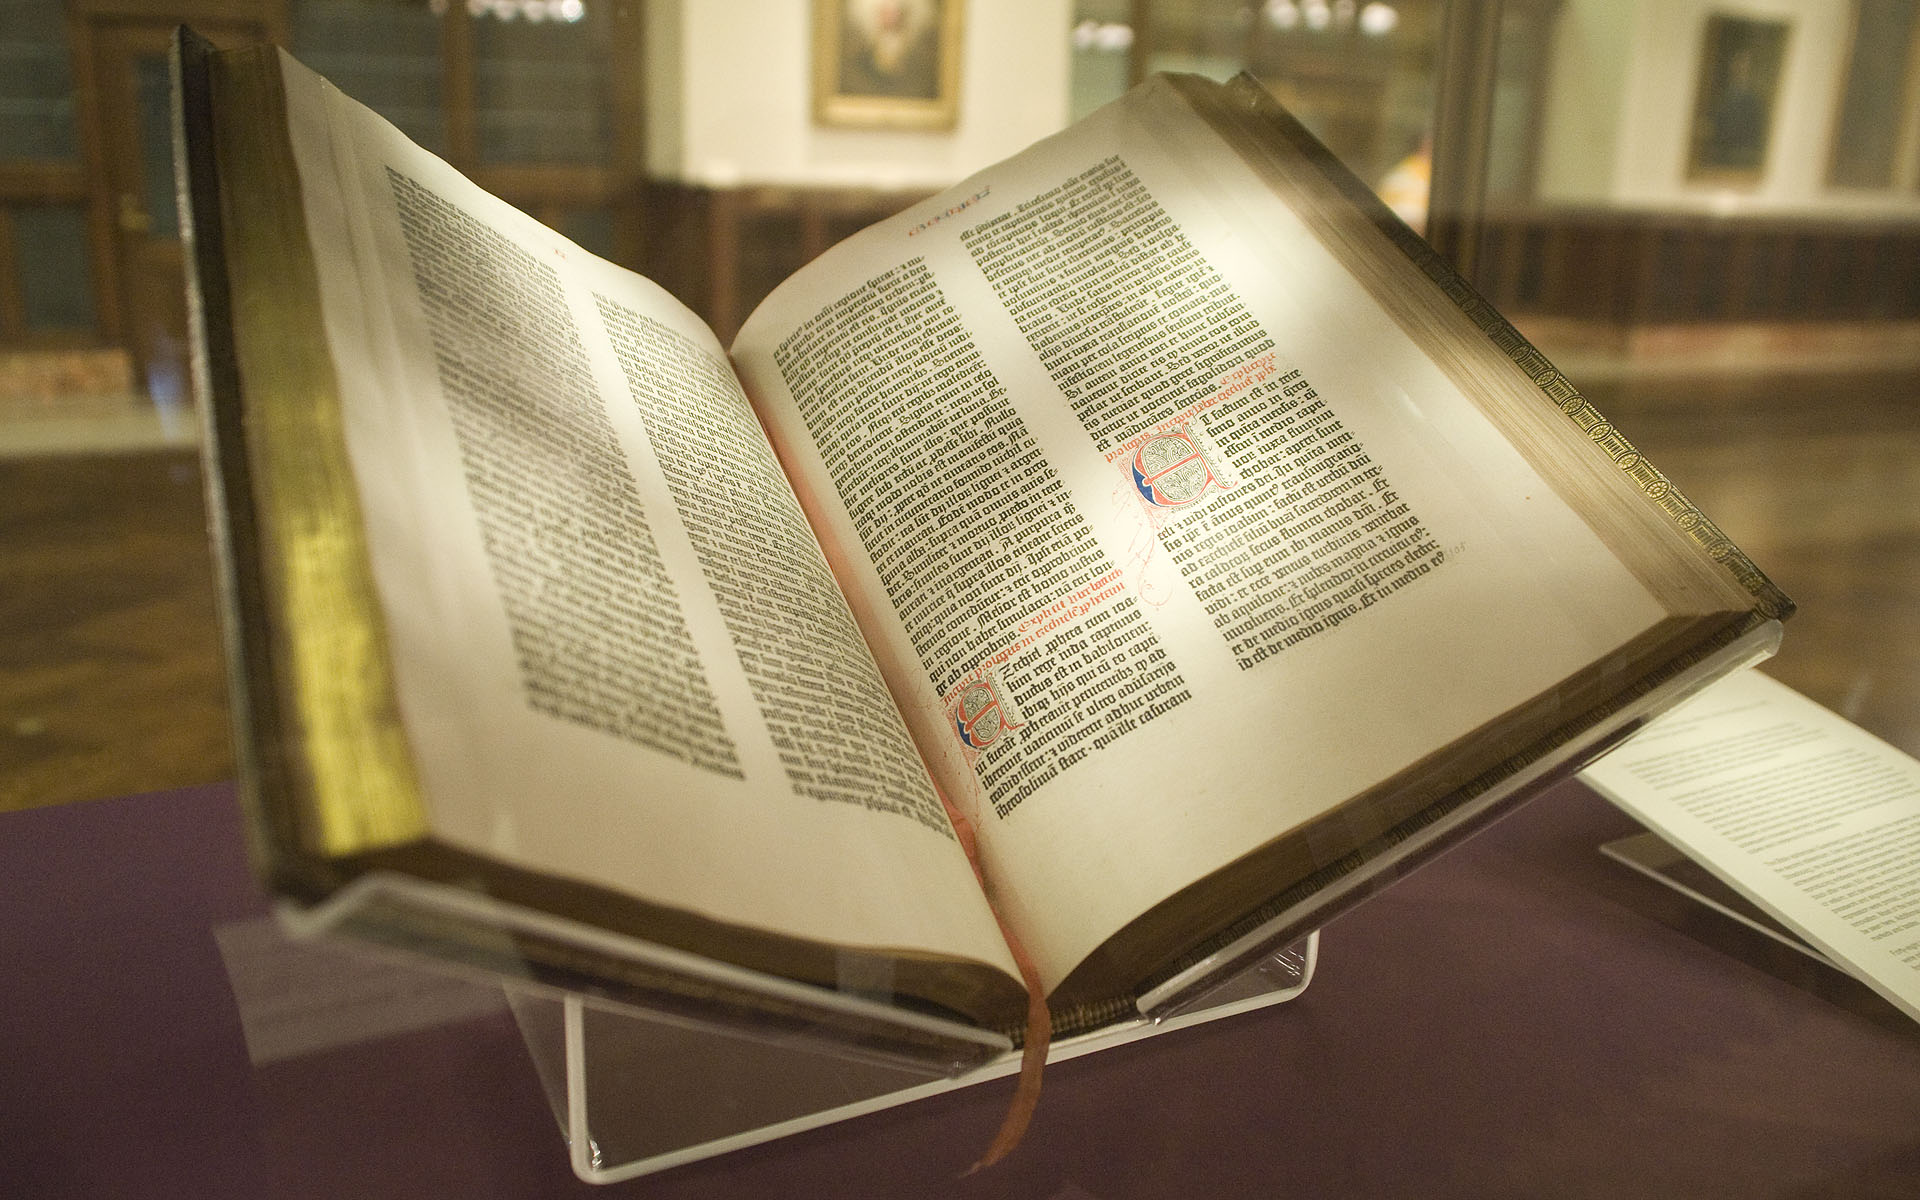 gutenberg_bible-_lenox_copy-_new_york_public_library-_2009-_pic_01